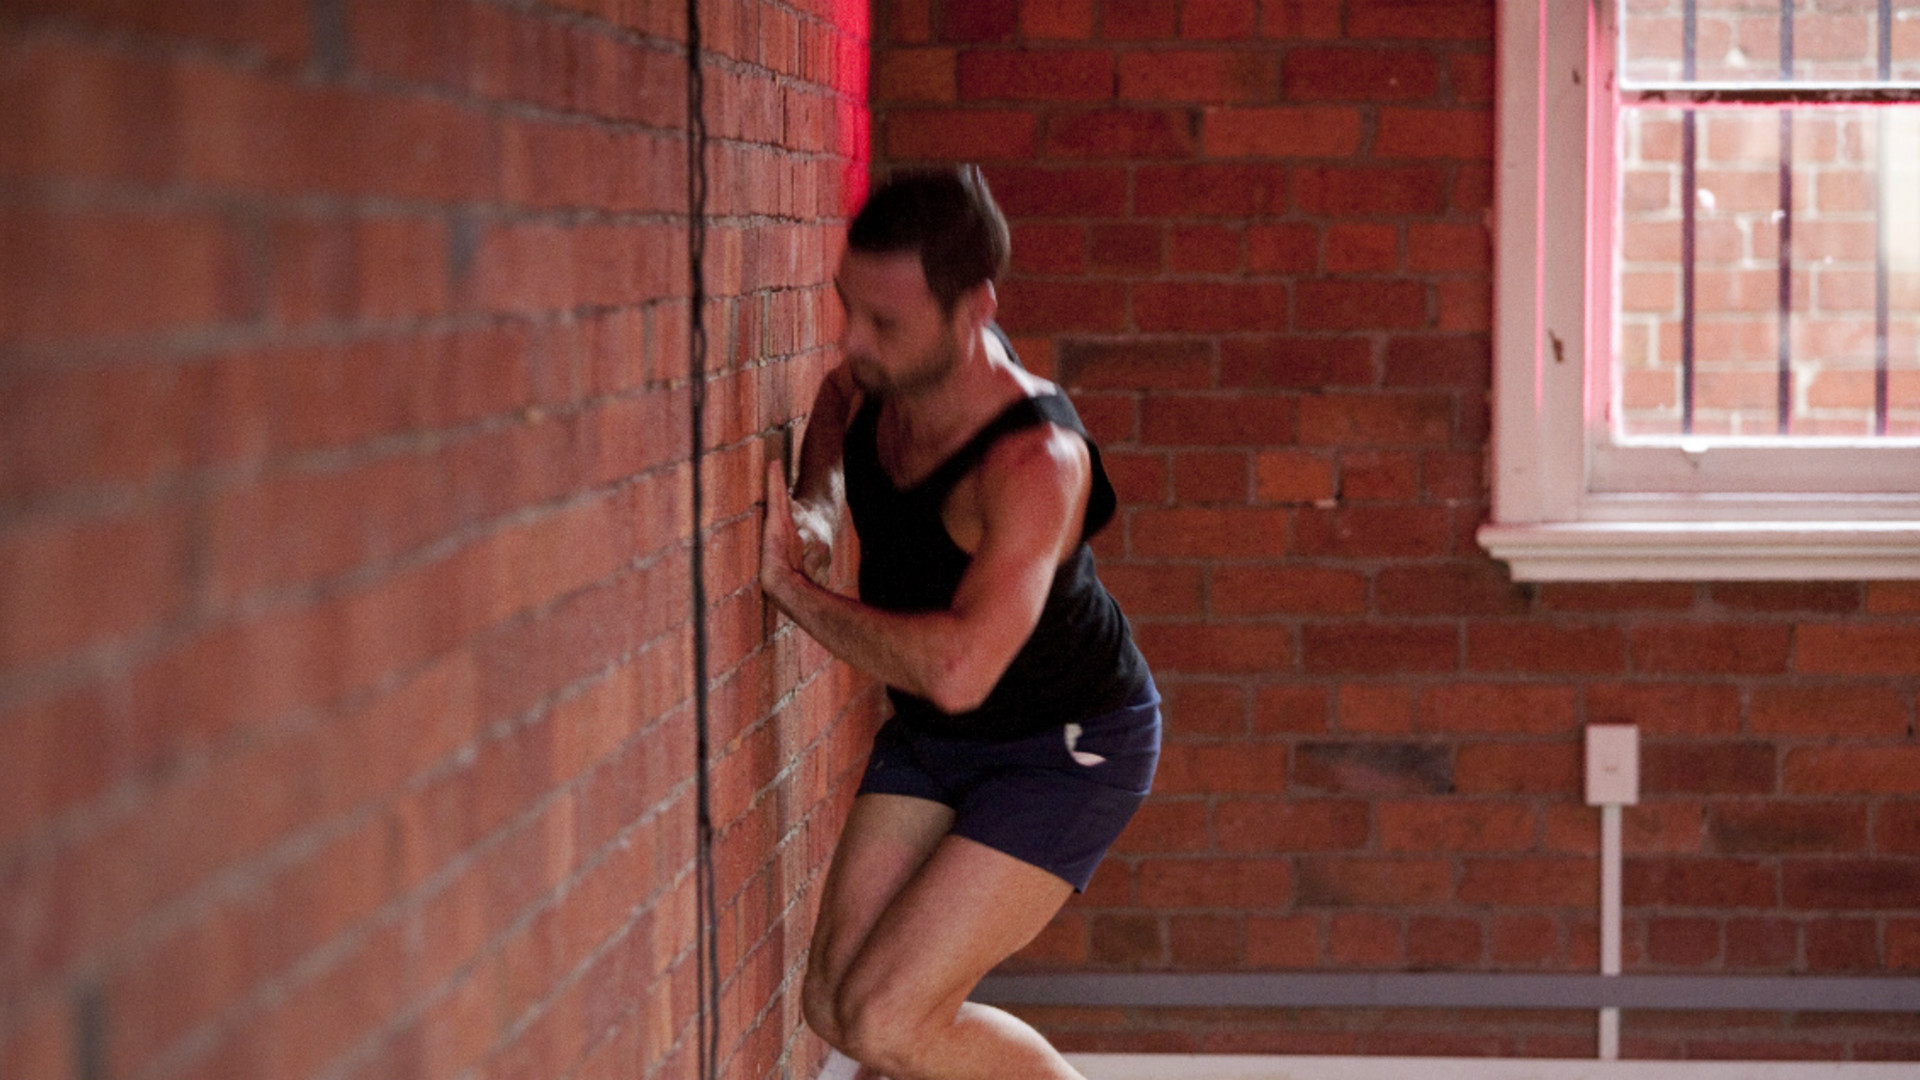 A man, Matthew Day, squats in front of a brick wall and is blurred by the dynamic action